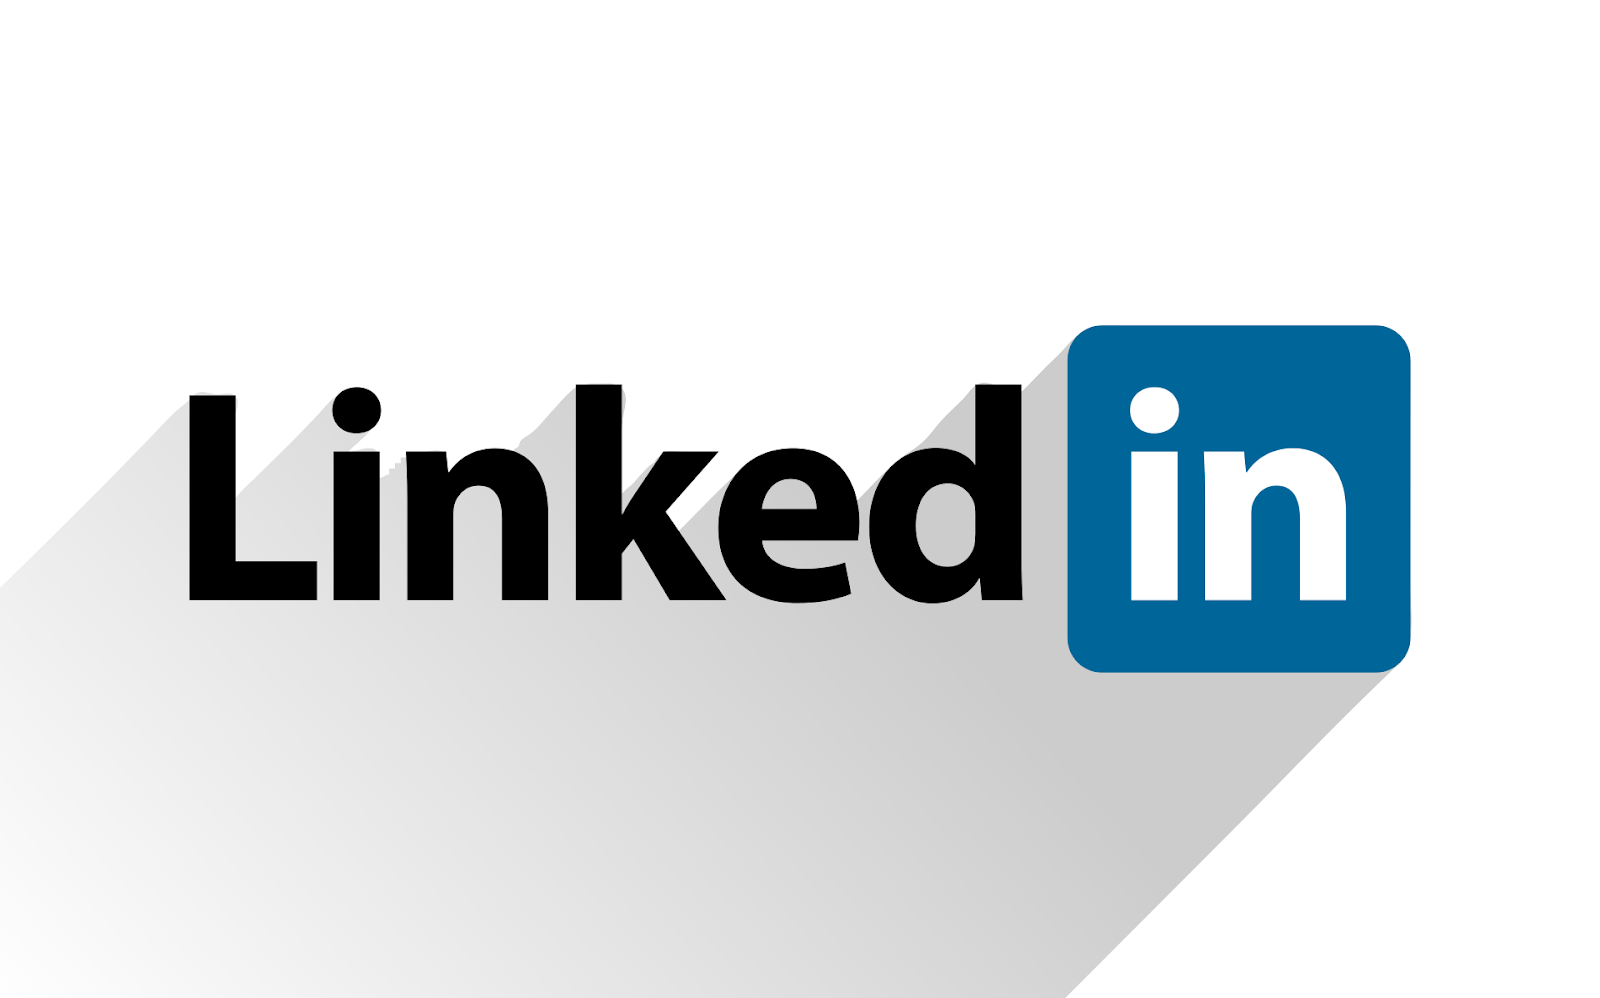 b2b internet marketing on LinkedIn